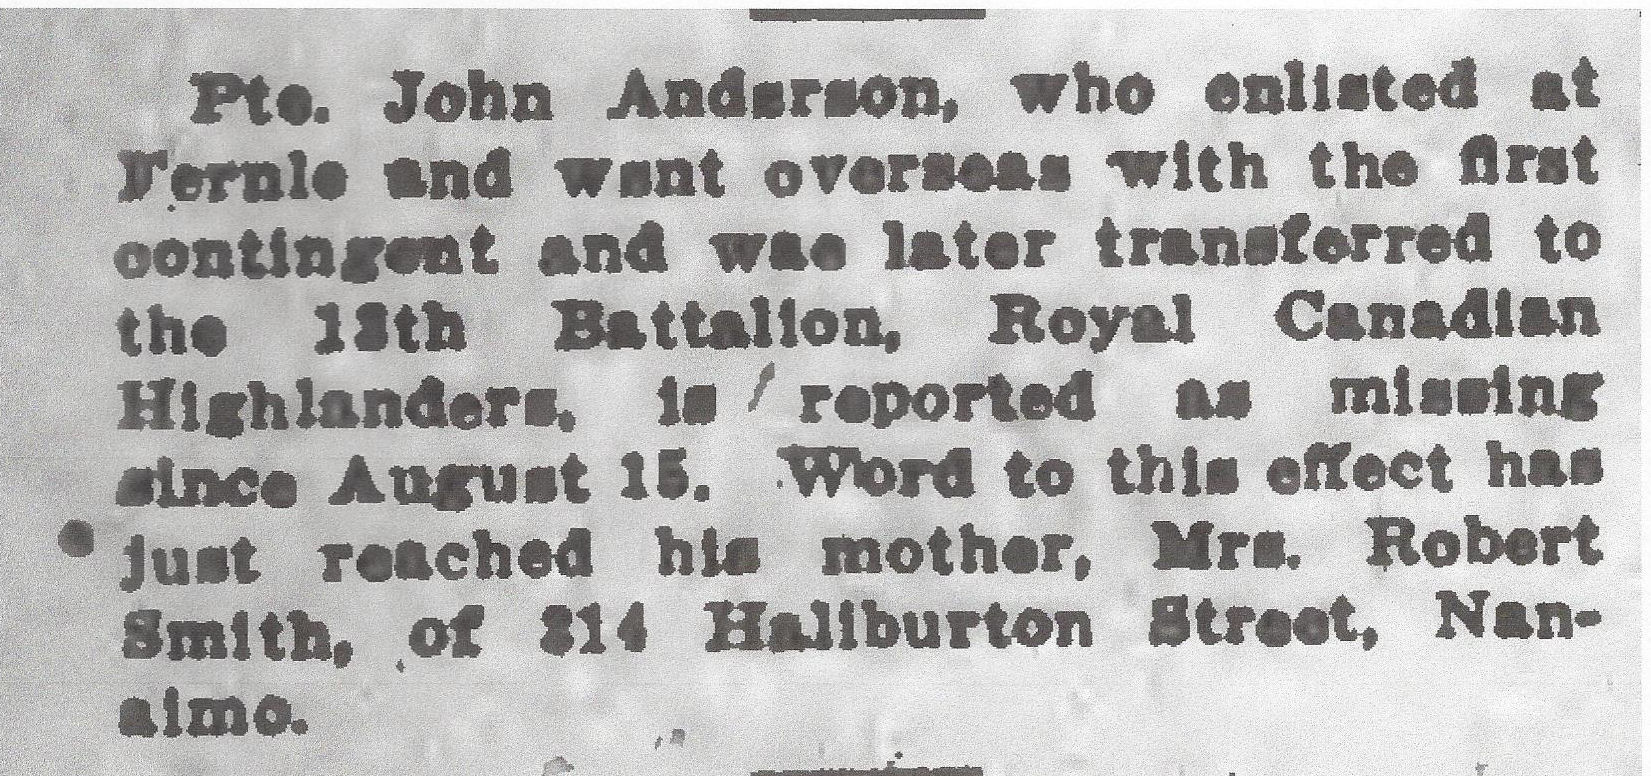 Newspaper clipping– From the Daily Colonist of September 9, 1917. Image taken from web address of http://archive.org/stream/dailycolonist59y235uvic#page/n0/mode/1up